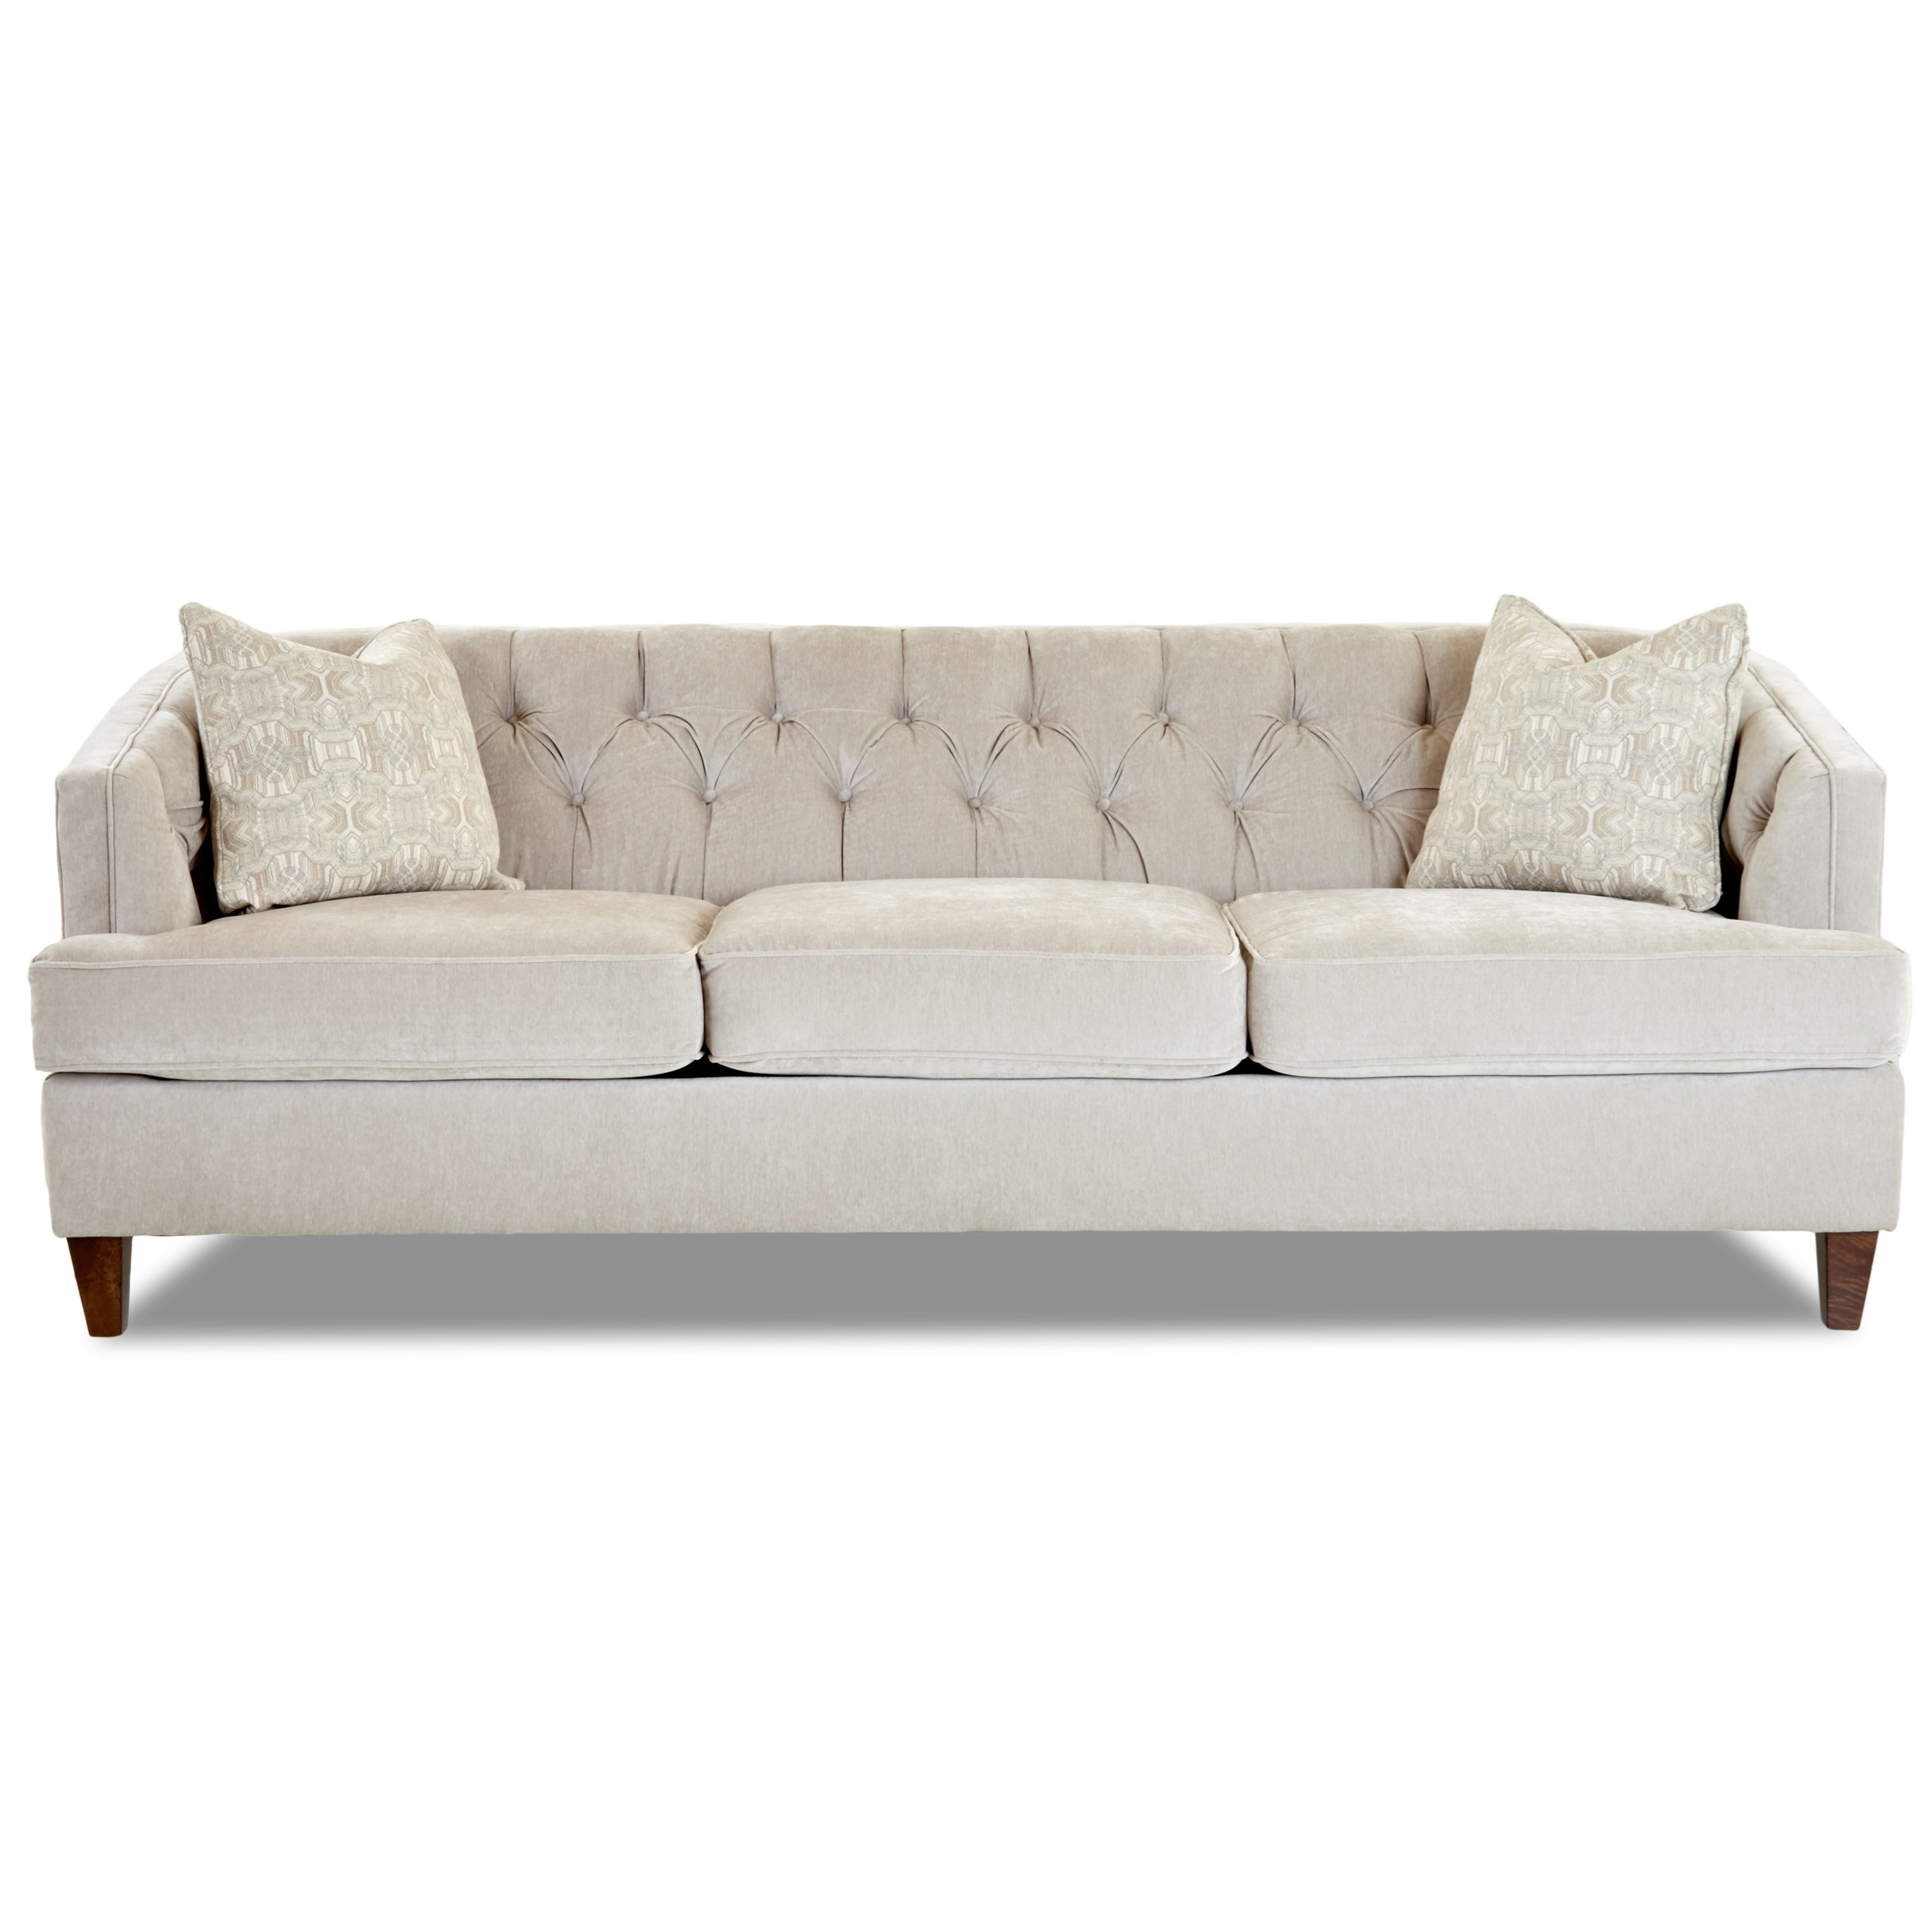 Tufted Contemporary Sofa